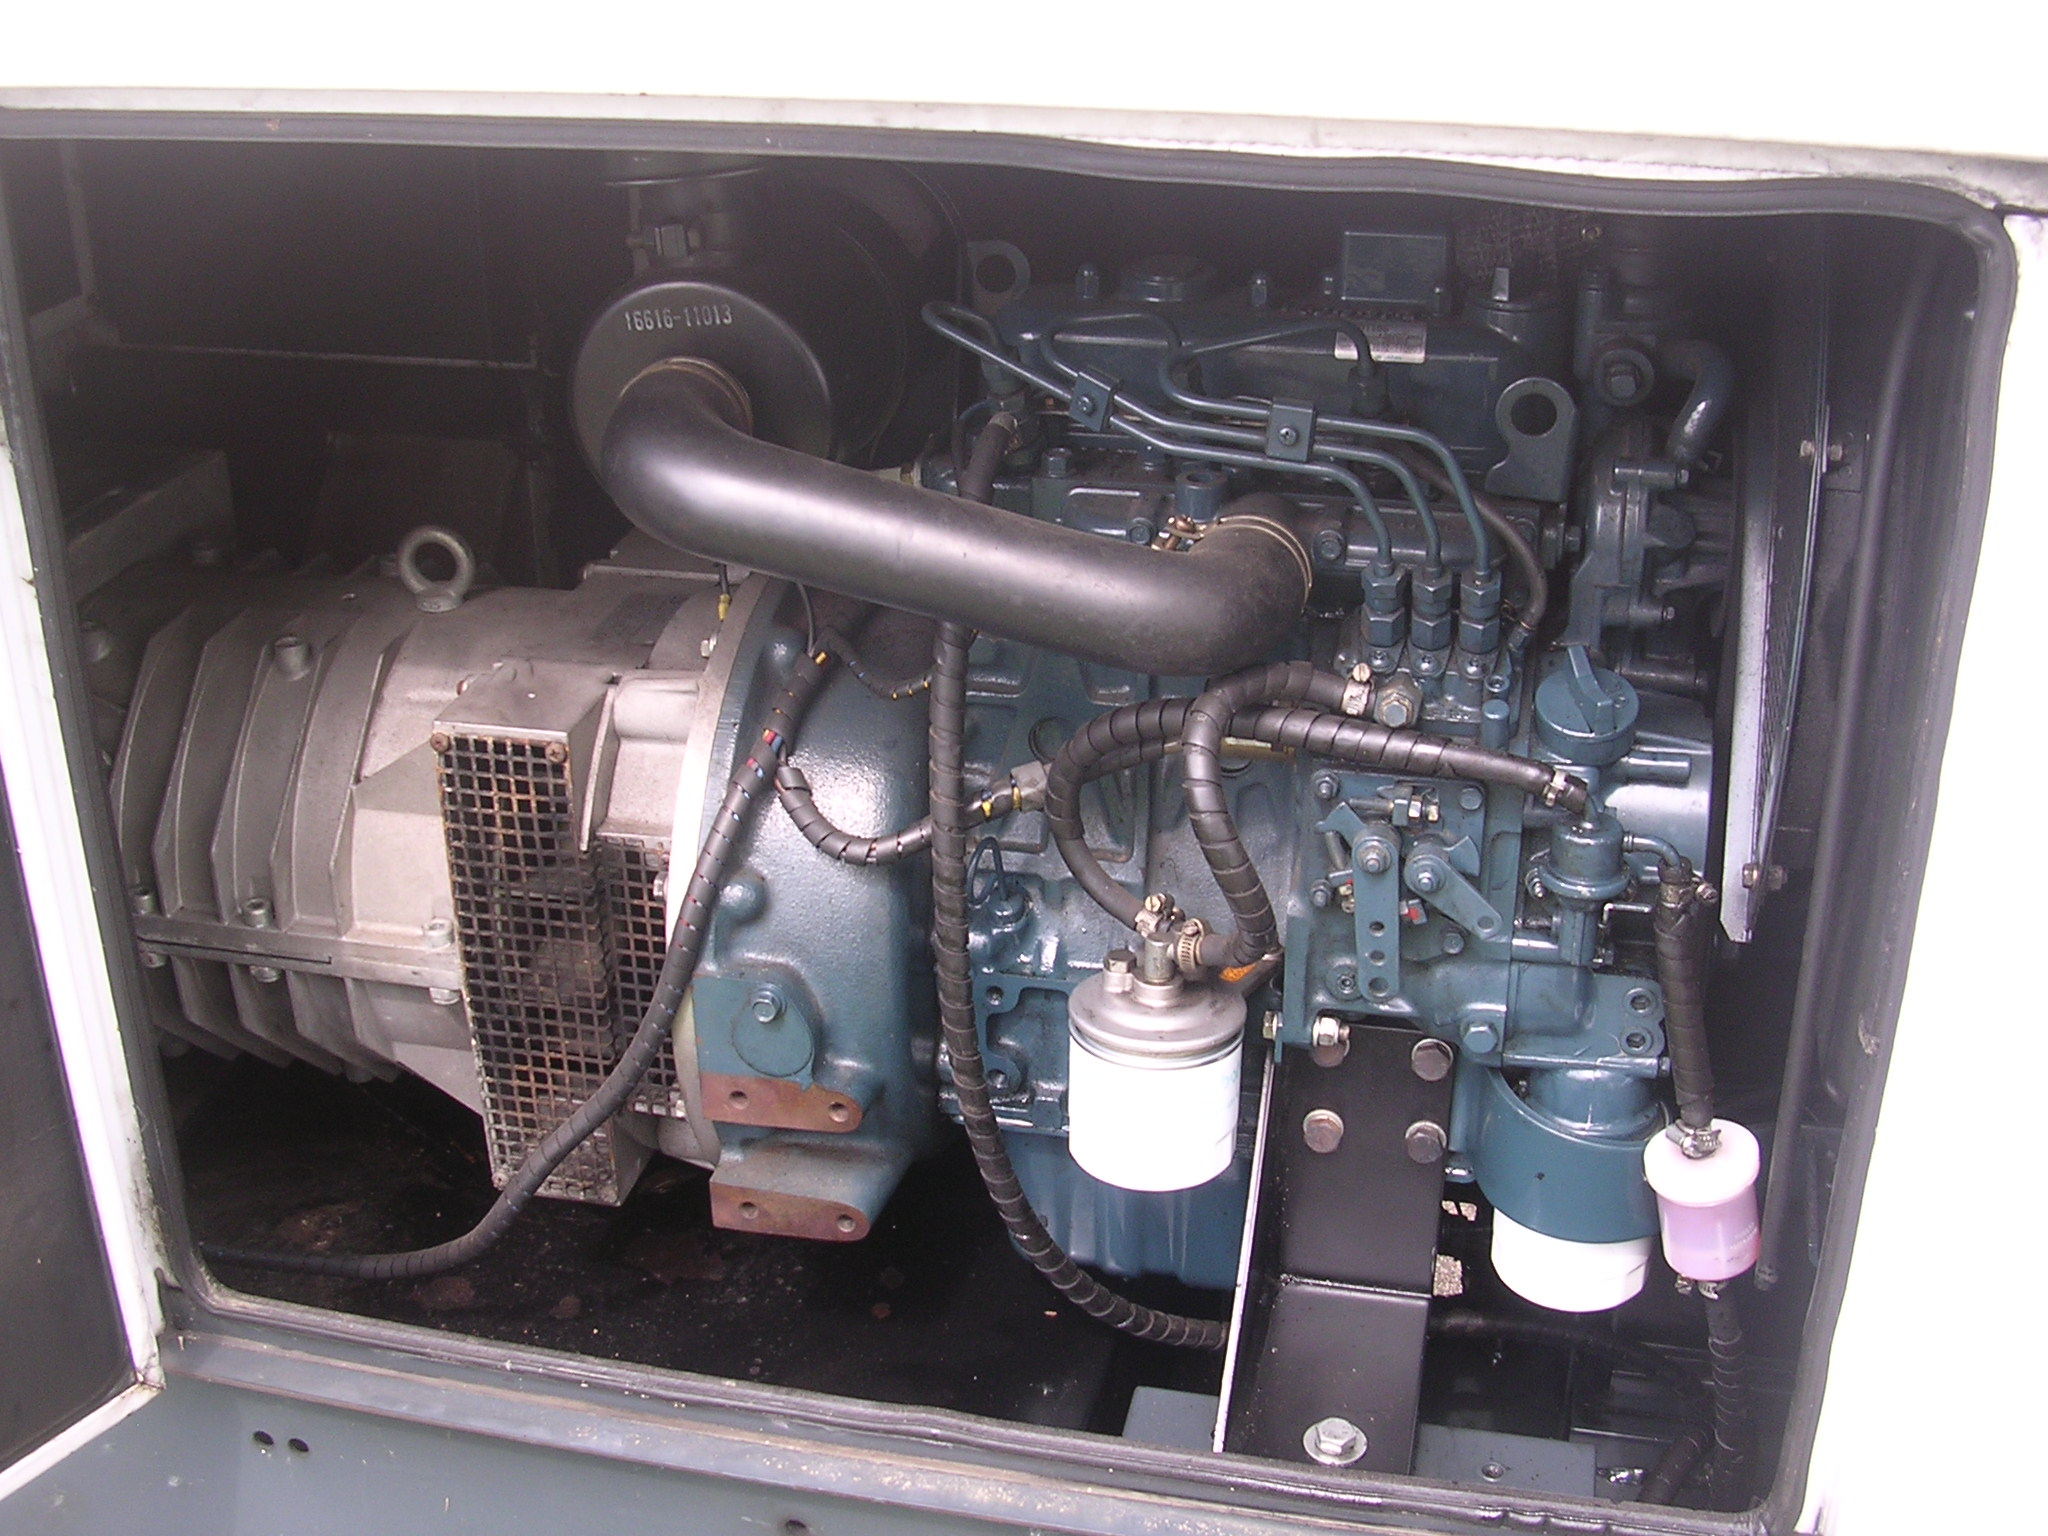 Stage 1 Just The Generator Off Grid Uk Kubota D1105 Wiring Diagram Second Picture Shows Inside Diesel Engine Which I Now Know To Be A Manufactured In November 2003 Is On Right And